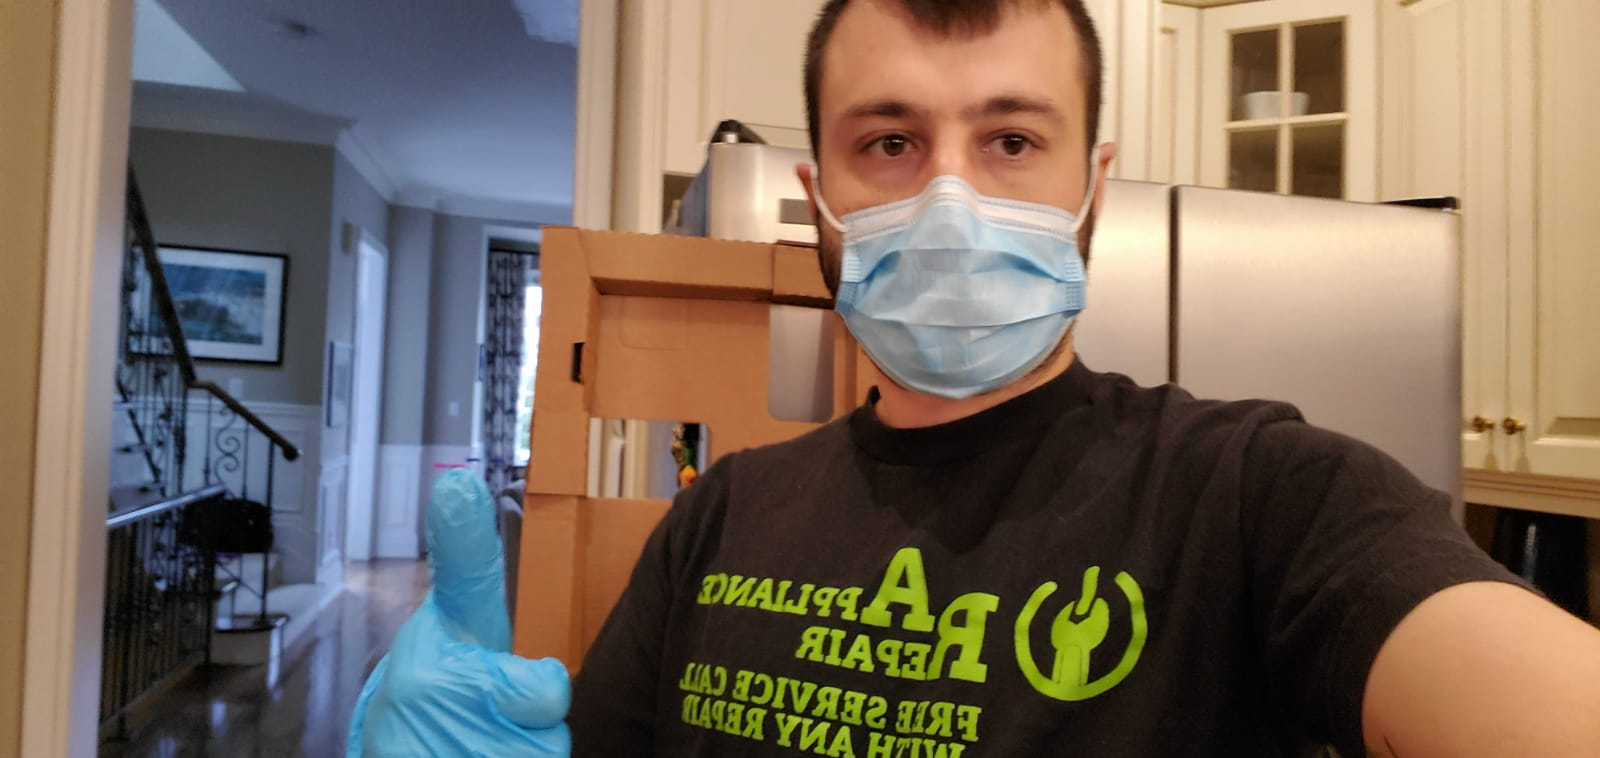 Our Technician staining safe with mask and gloves